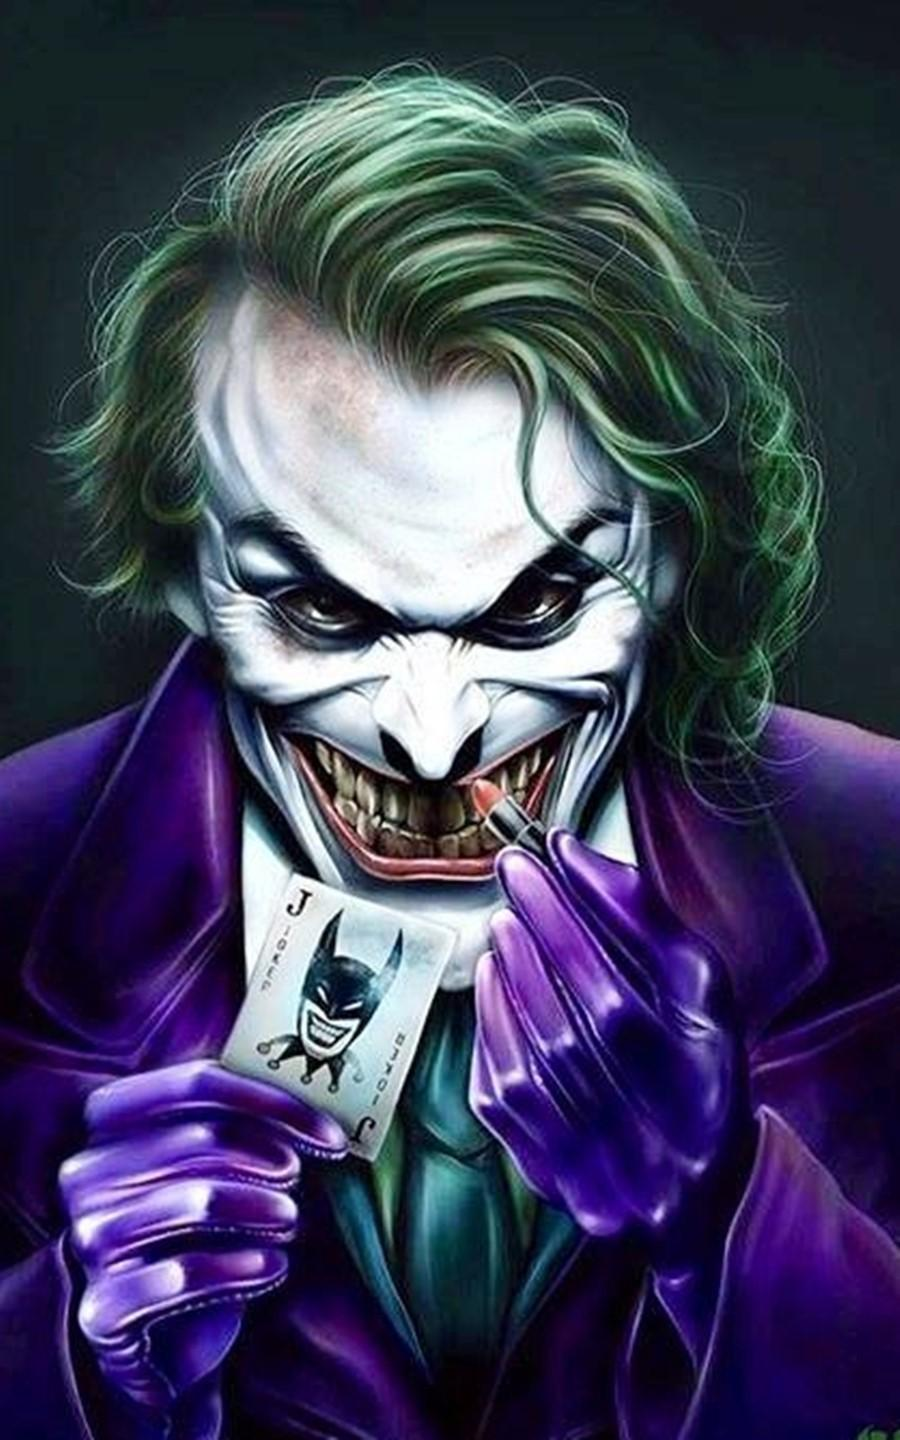 The Joker Wallpaper Hd Posted By Michelle Anderson